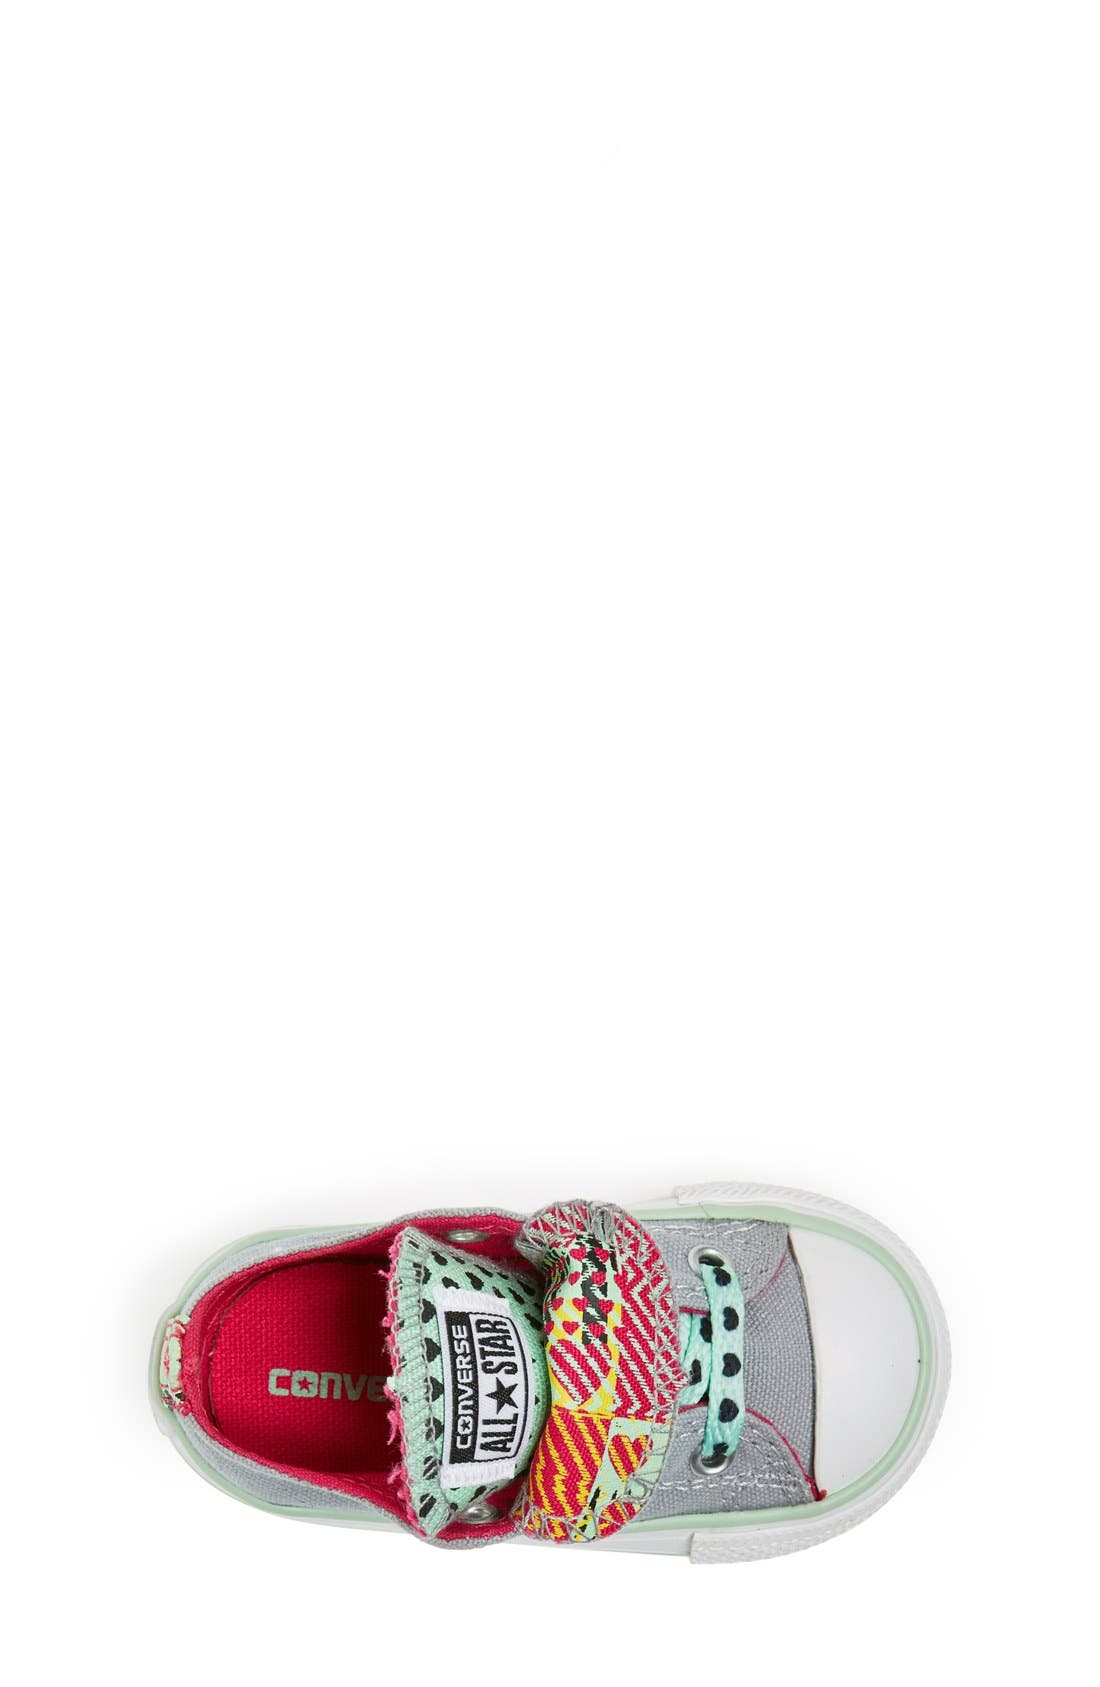 Alternate Image 3  - Converse Chuck Taylor® All Star® Double Tongue Sneaker (Baby, Walker & Toddler)